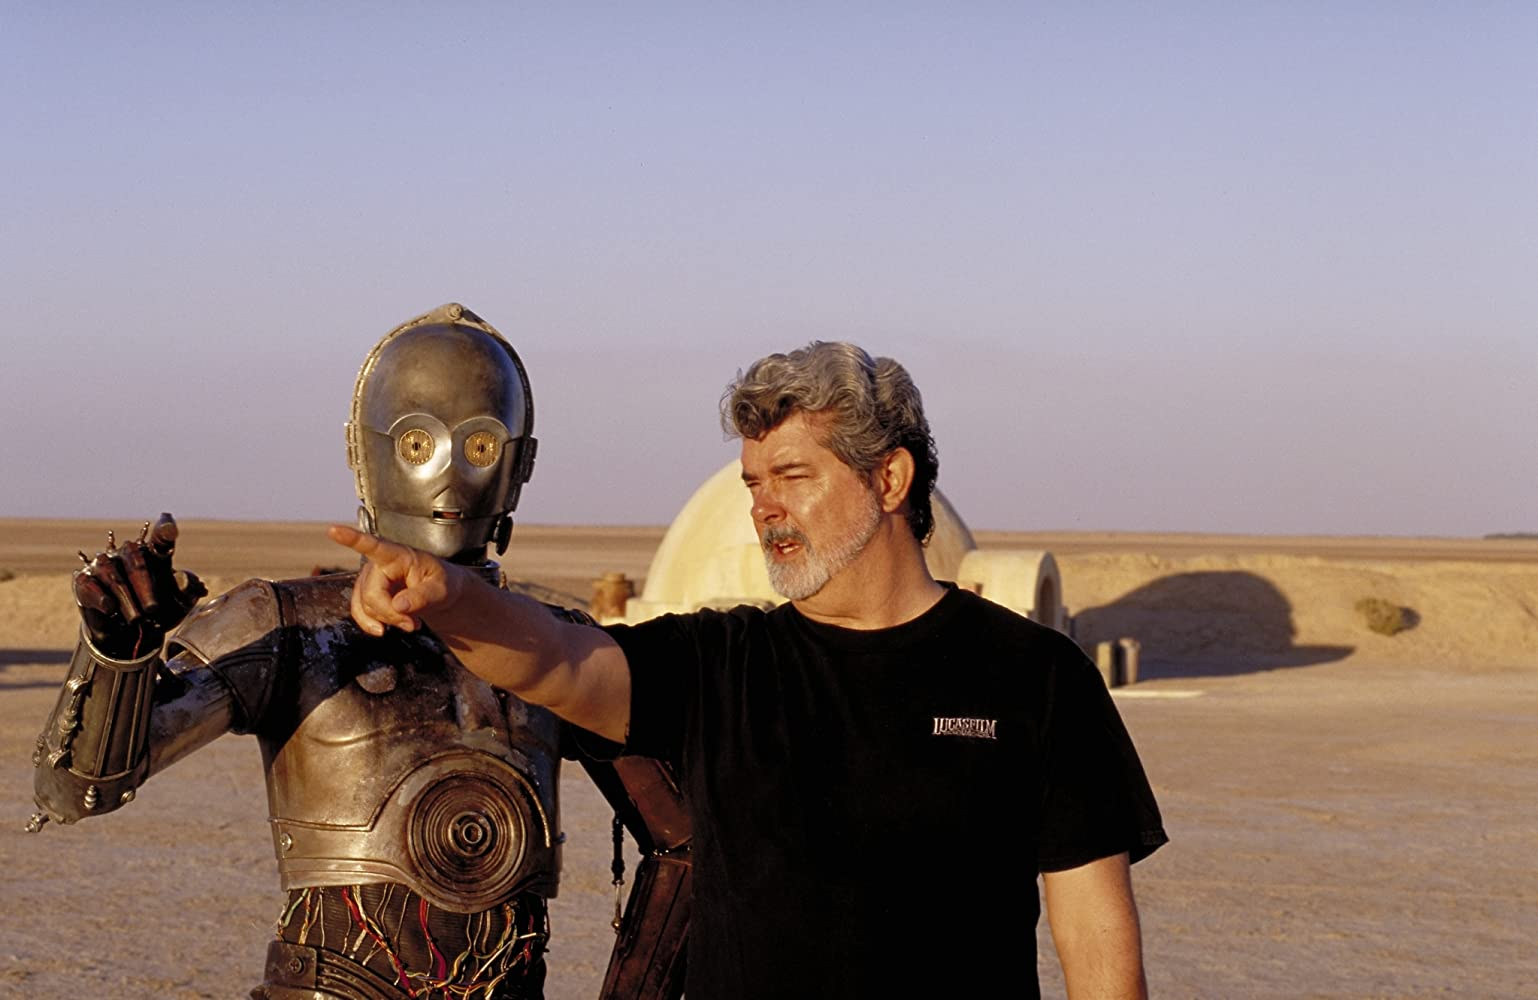 George Lucas and Anthony Daniels in Star Wars: Episode II - Attack of the Clones (2002)